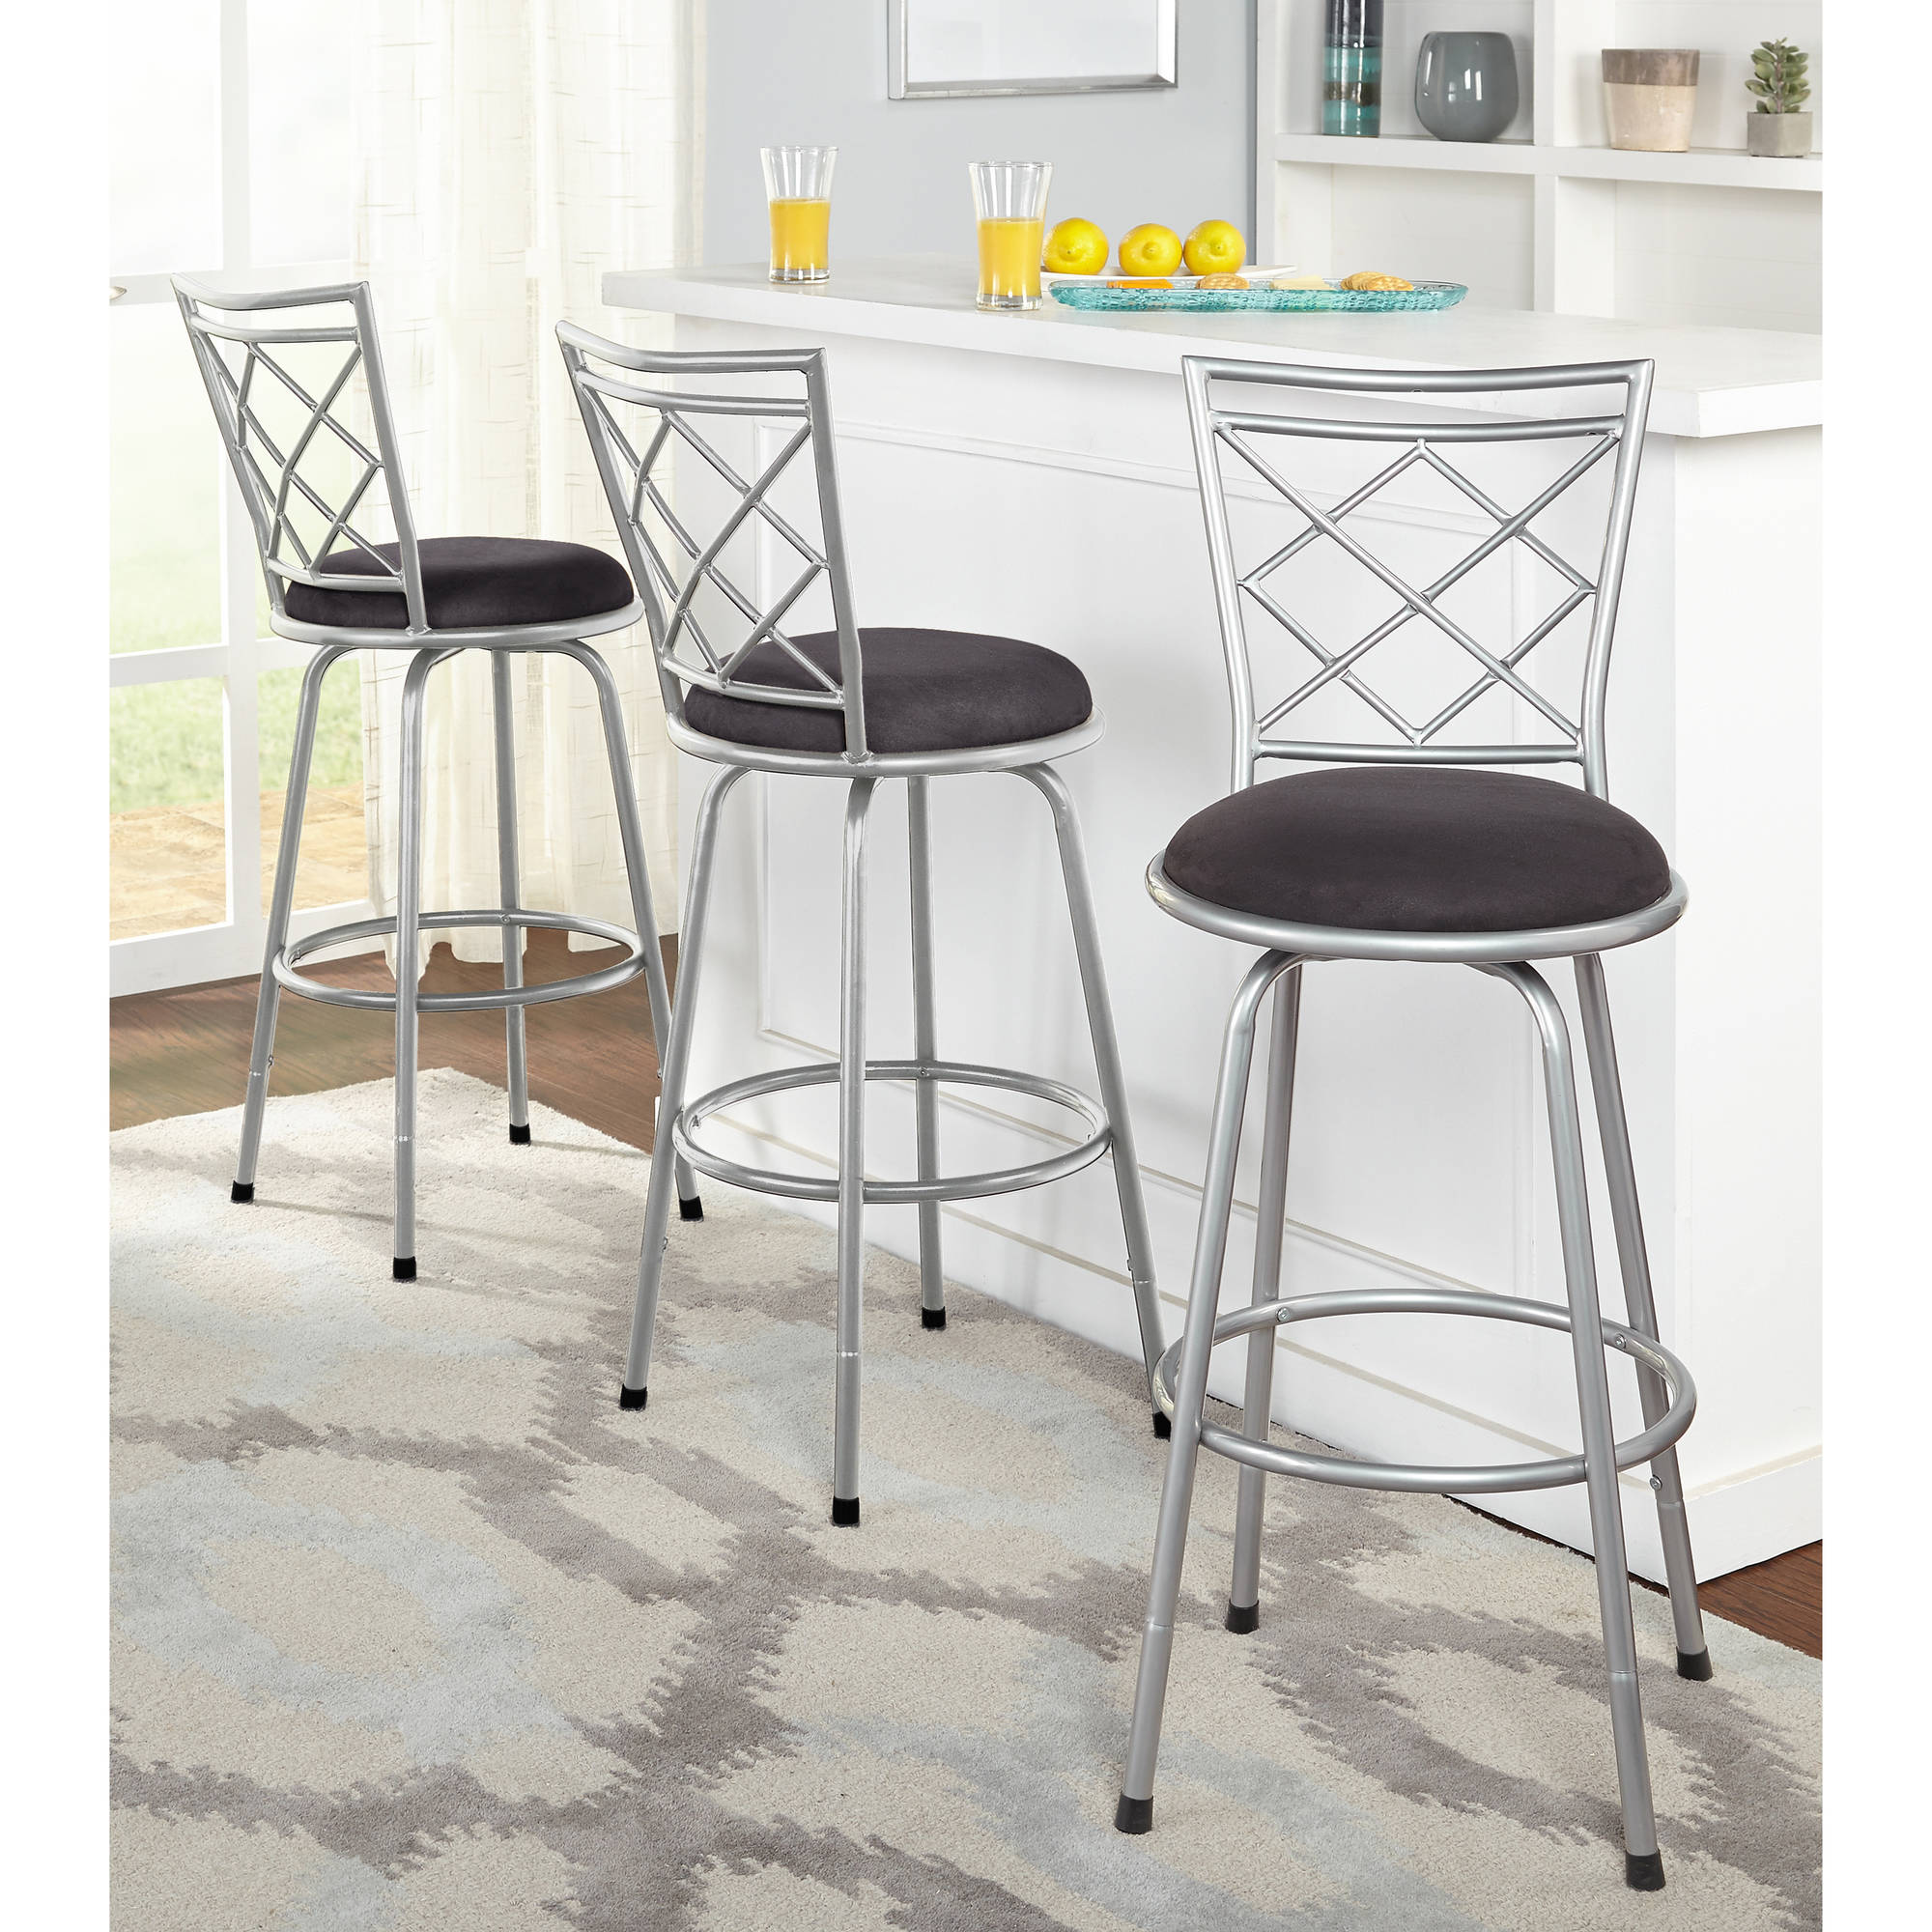 3-Piece Avery Adjustable Height Bar Stool, Multiple Colors by TMS